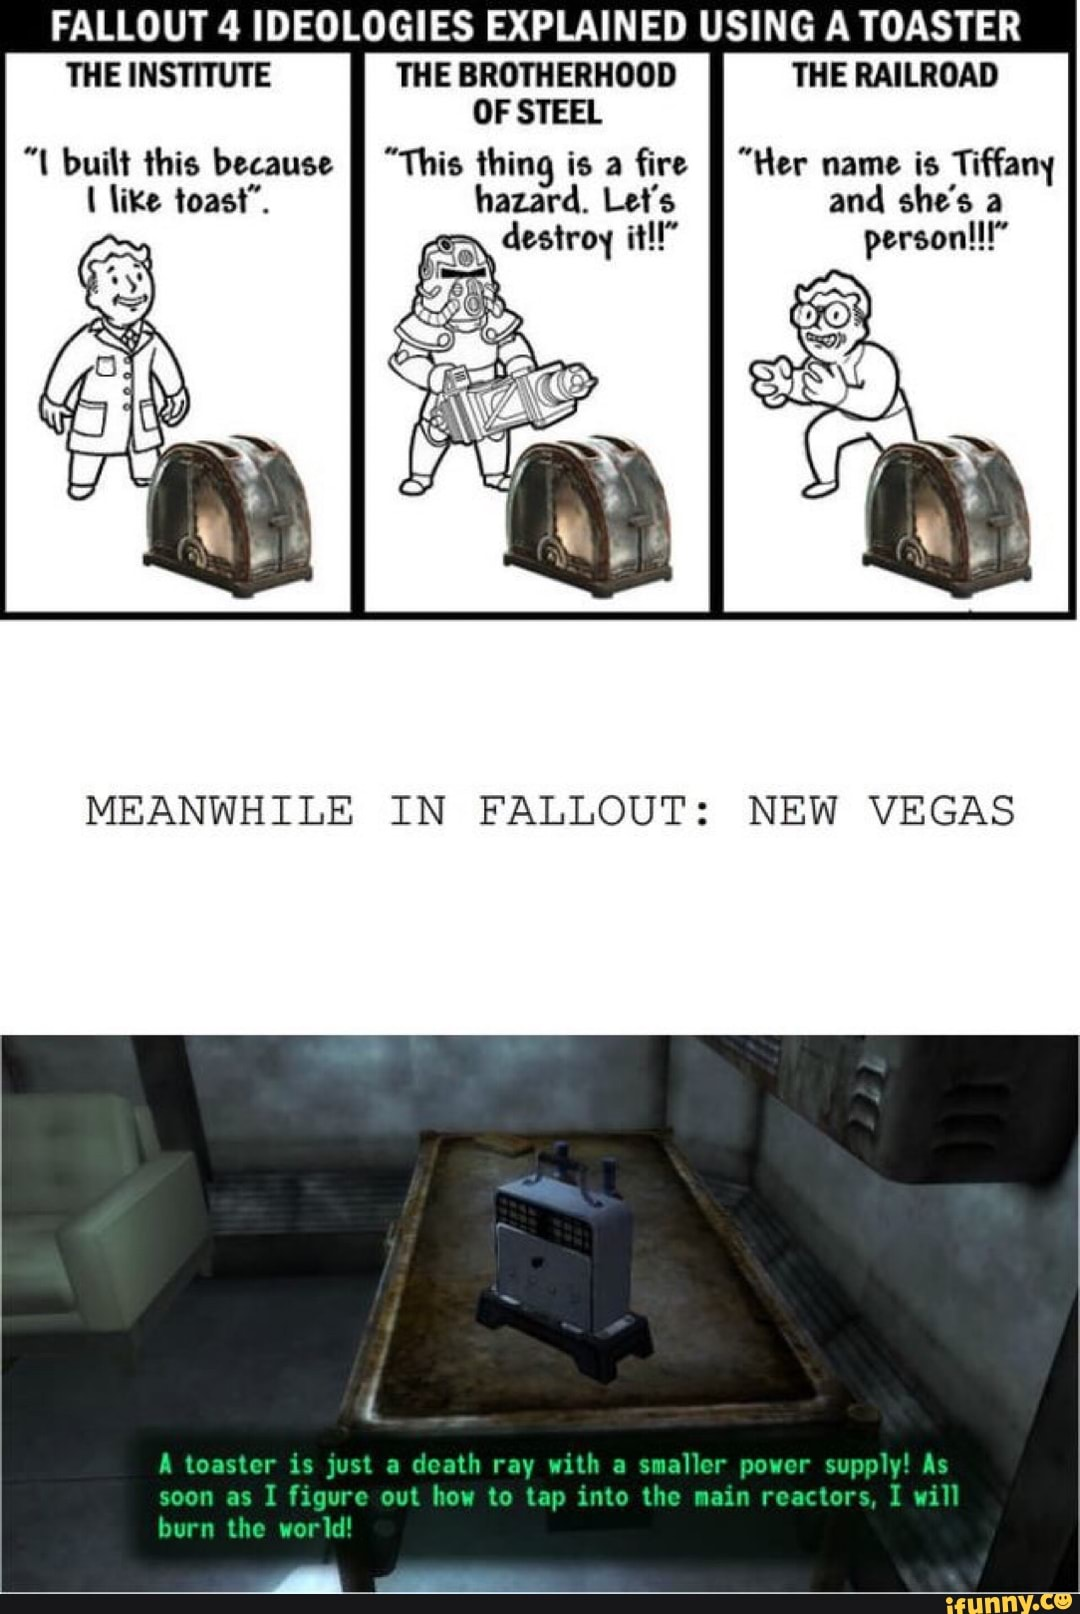 FALLOUT 4 IDEOLOGIES EXPLAINED USING A TOASTER THE INSTITUTE